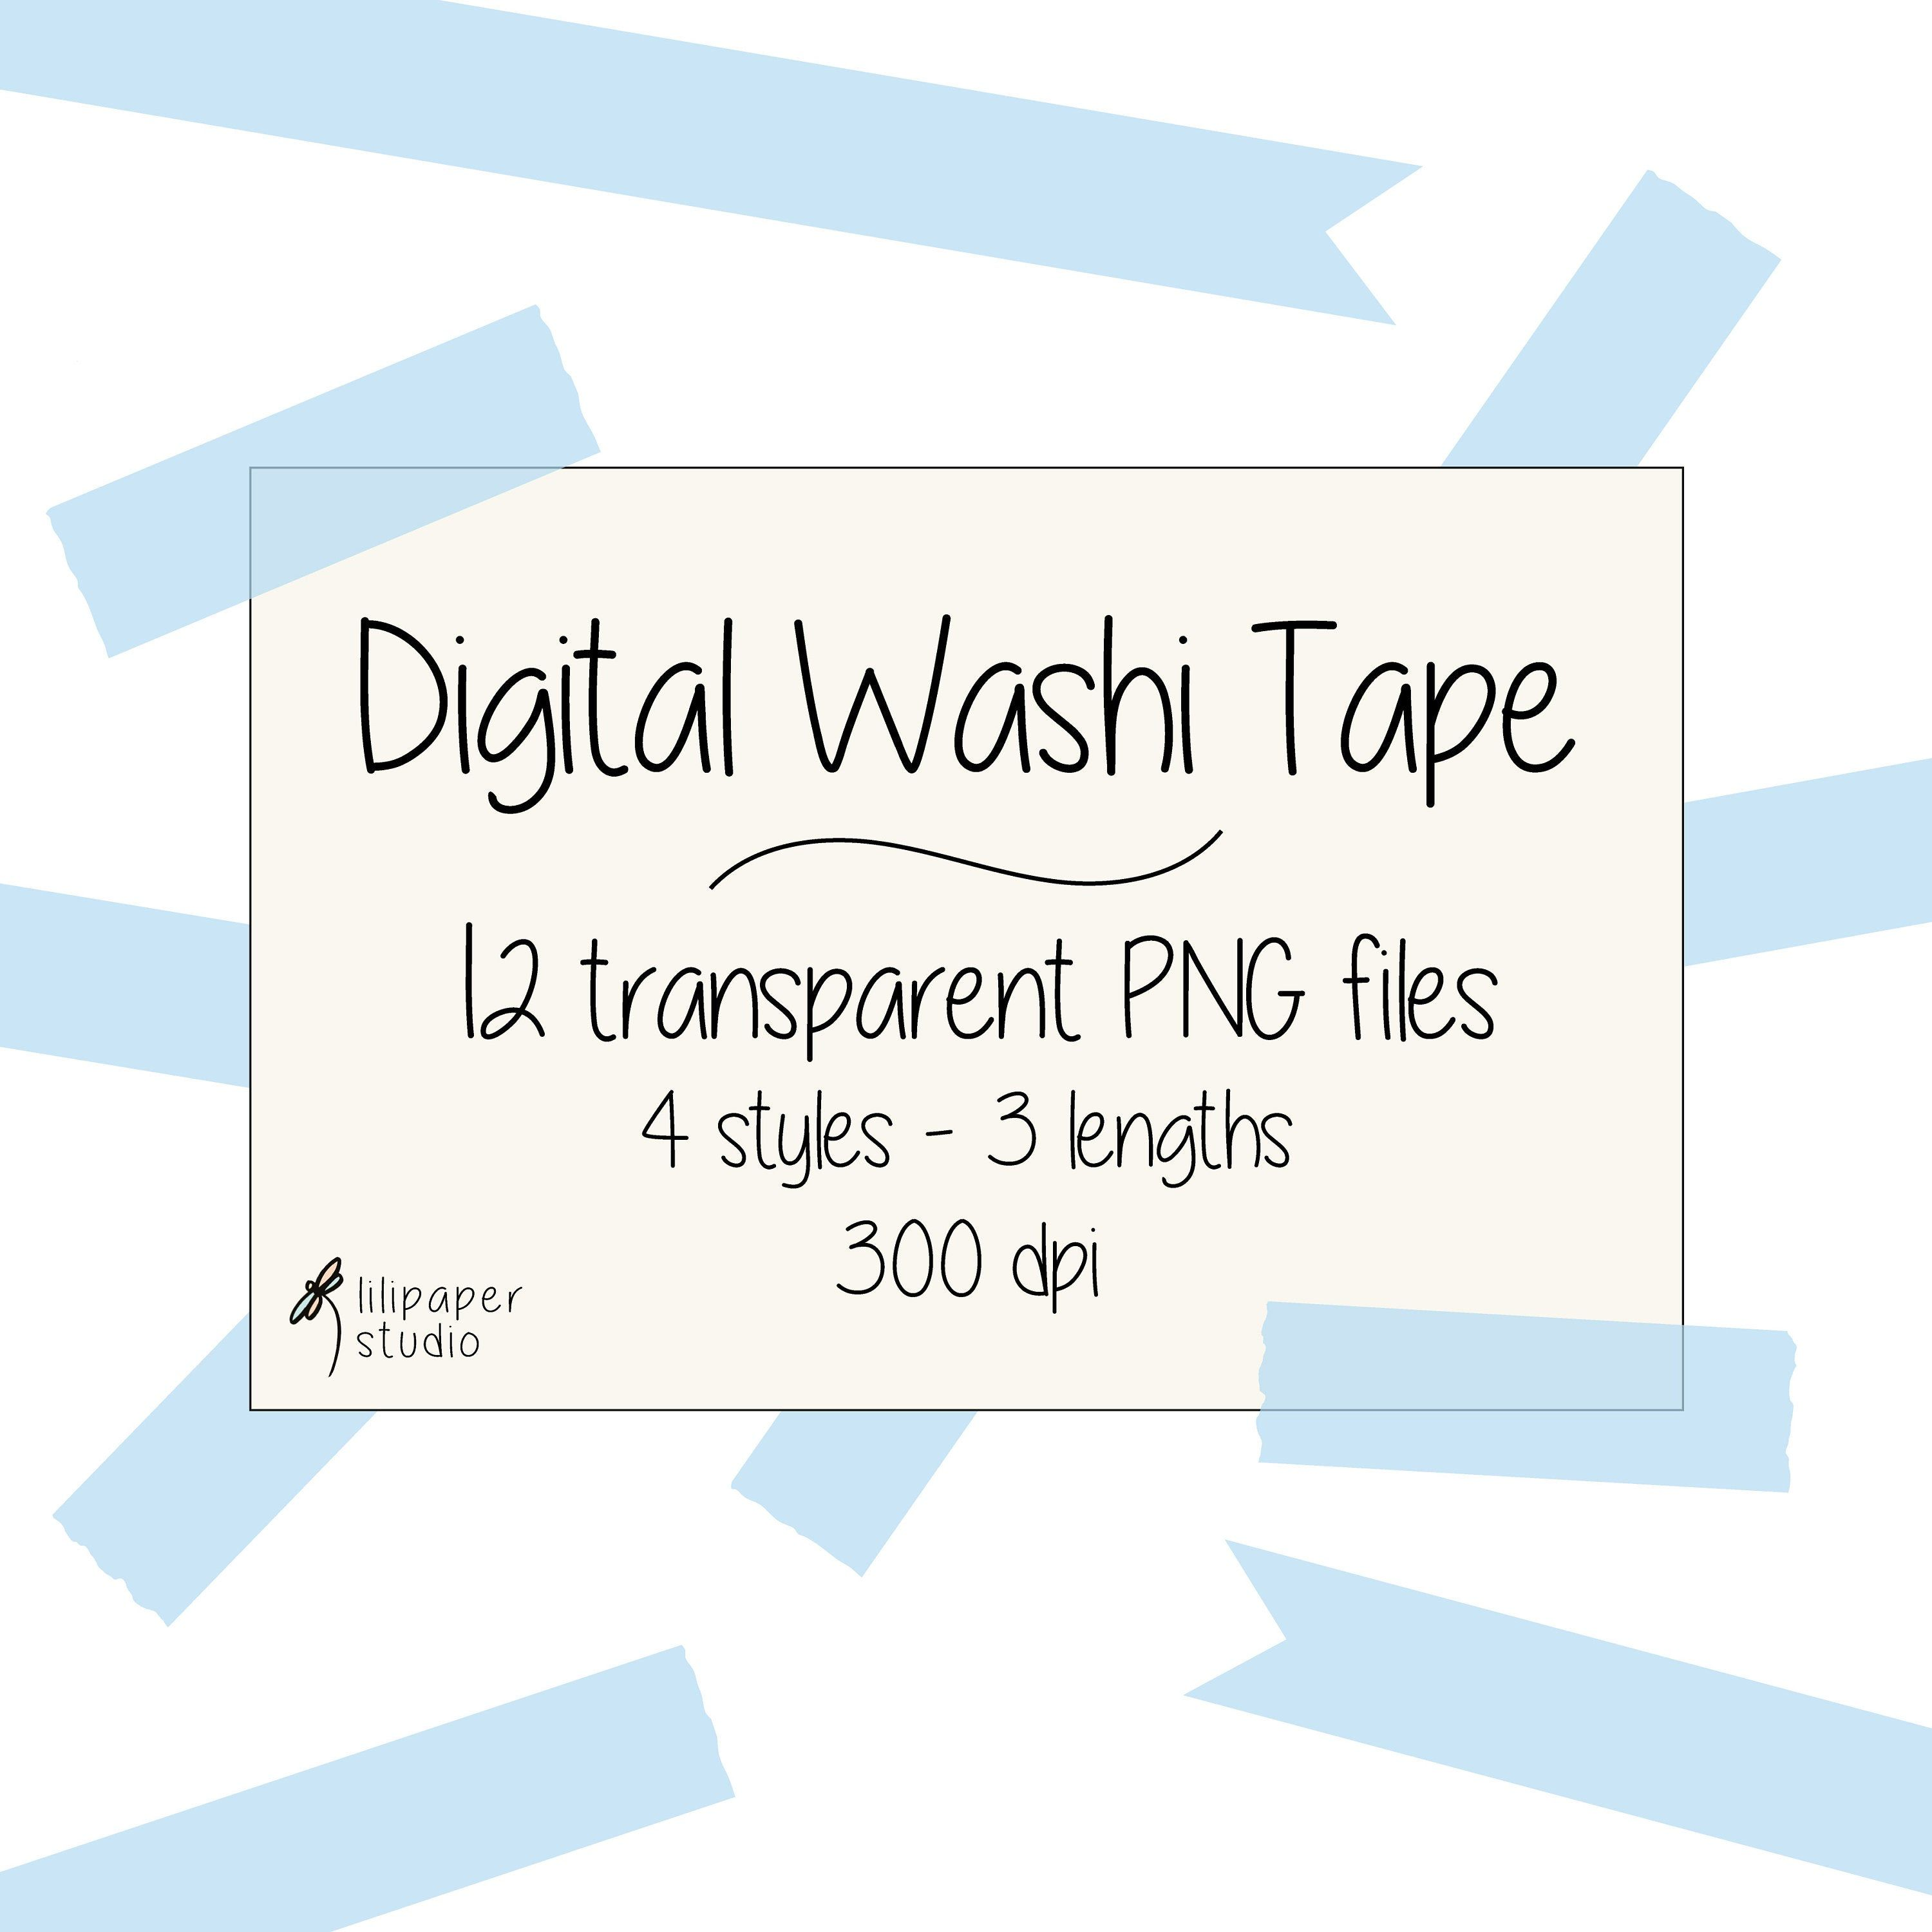 Blue Washi Tape Cliparts 12 Transparent Png Files Blue Digital Washi Tape Digital Download Free Commercial Use 4 Styles 3 Lengths Pink Scrapbook Paper Washi Tape Washi